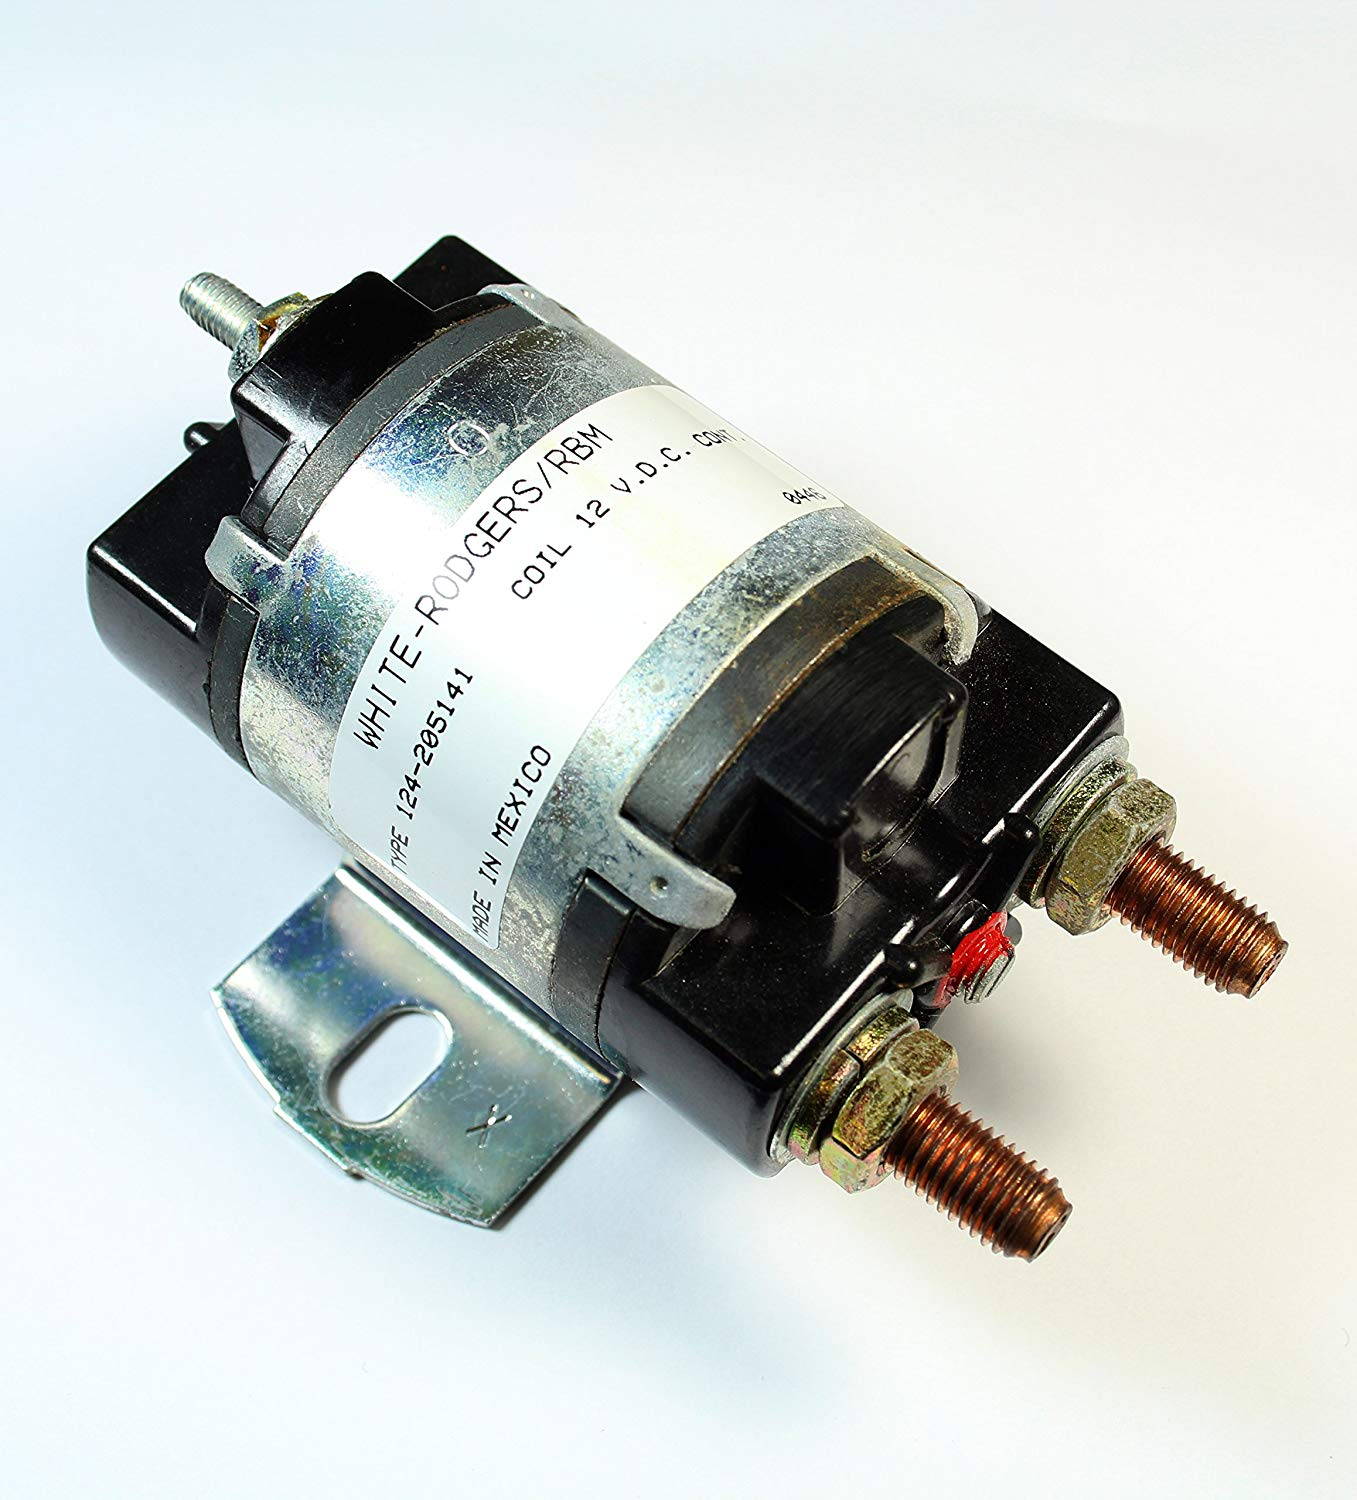 White Rodgers Continuous Duty Solenoid Wiring Diagram - 01 Nissan Sentra Wiring  Diagram - impalafuse.tukune.jeanjaures37.fr | White Rodgers Continuous Duty Solenoid Wiring Diagram |  | Wiring Diagram Resource